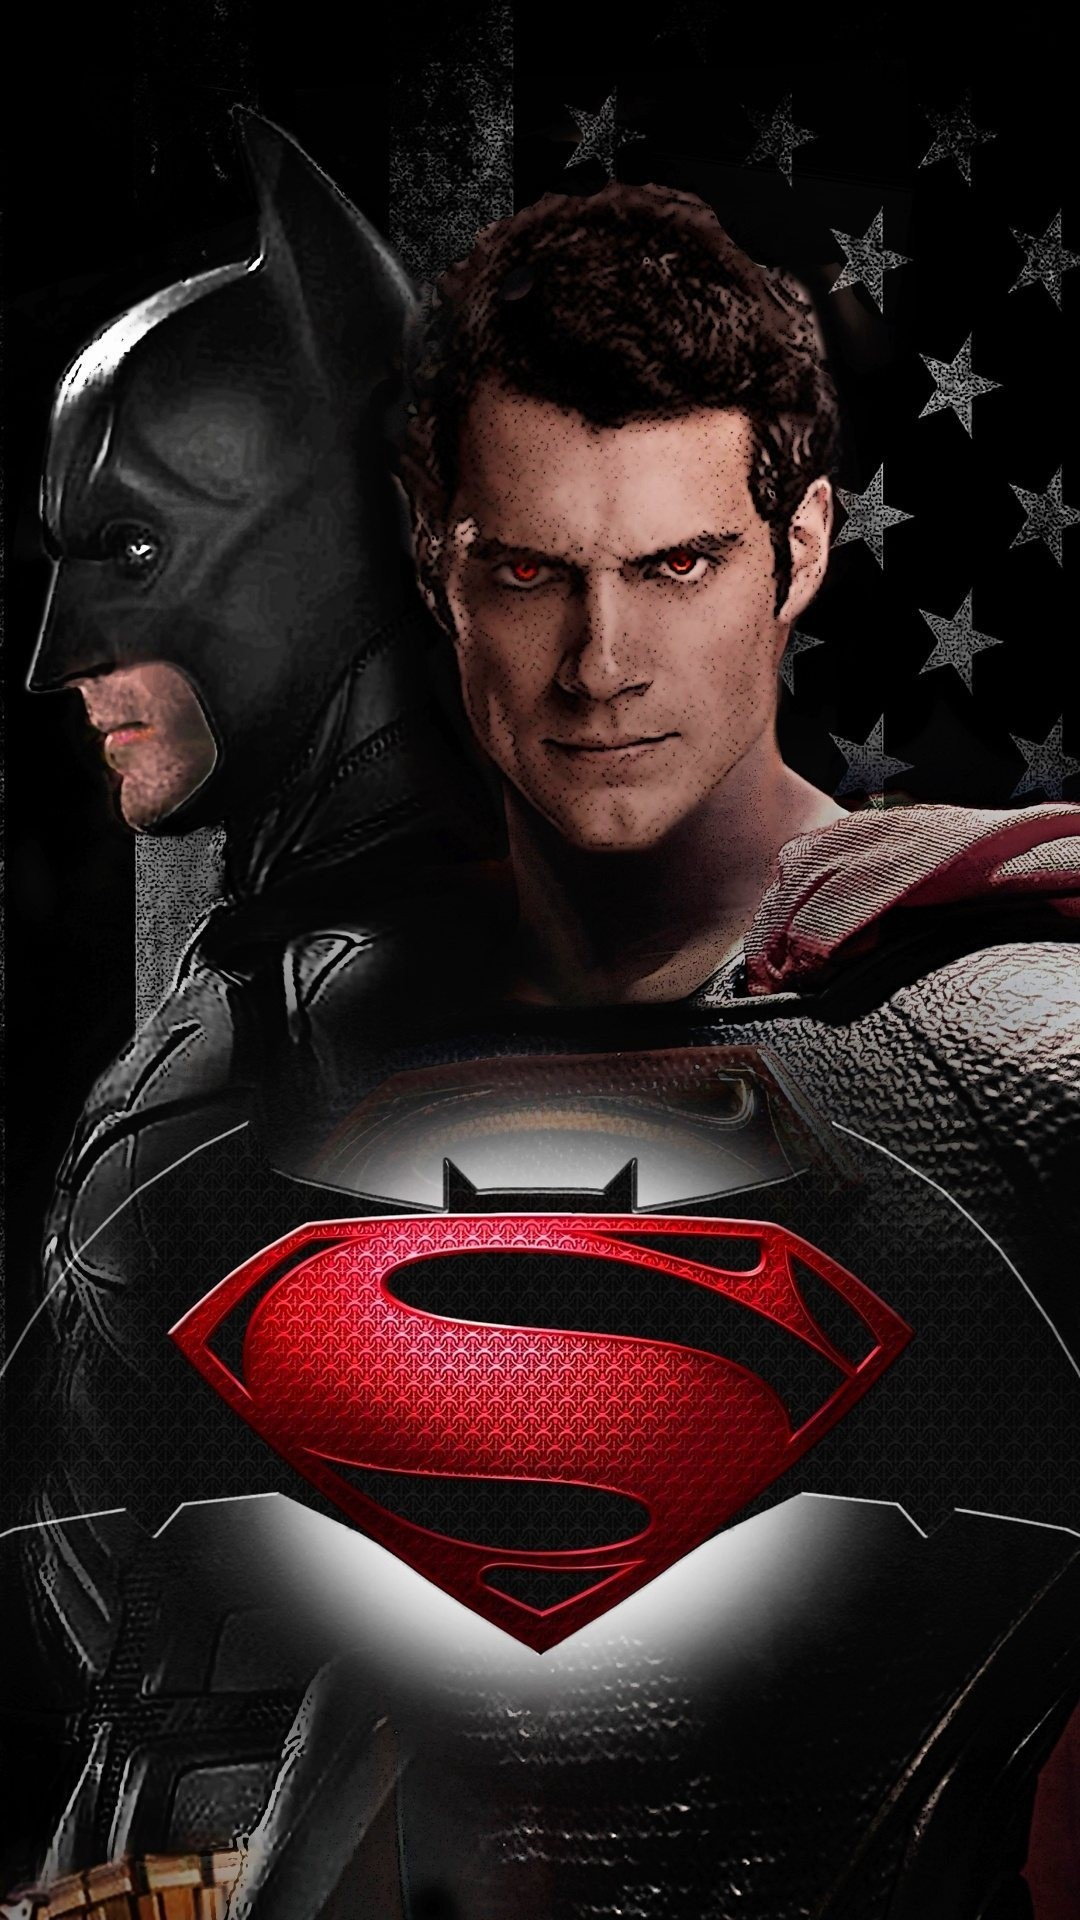 Batman Vs Superman Hd Wallpapers For Sony Xperia Z5